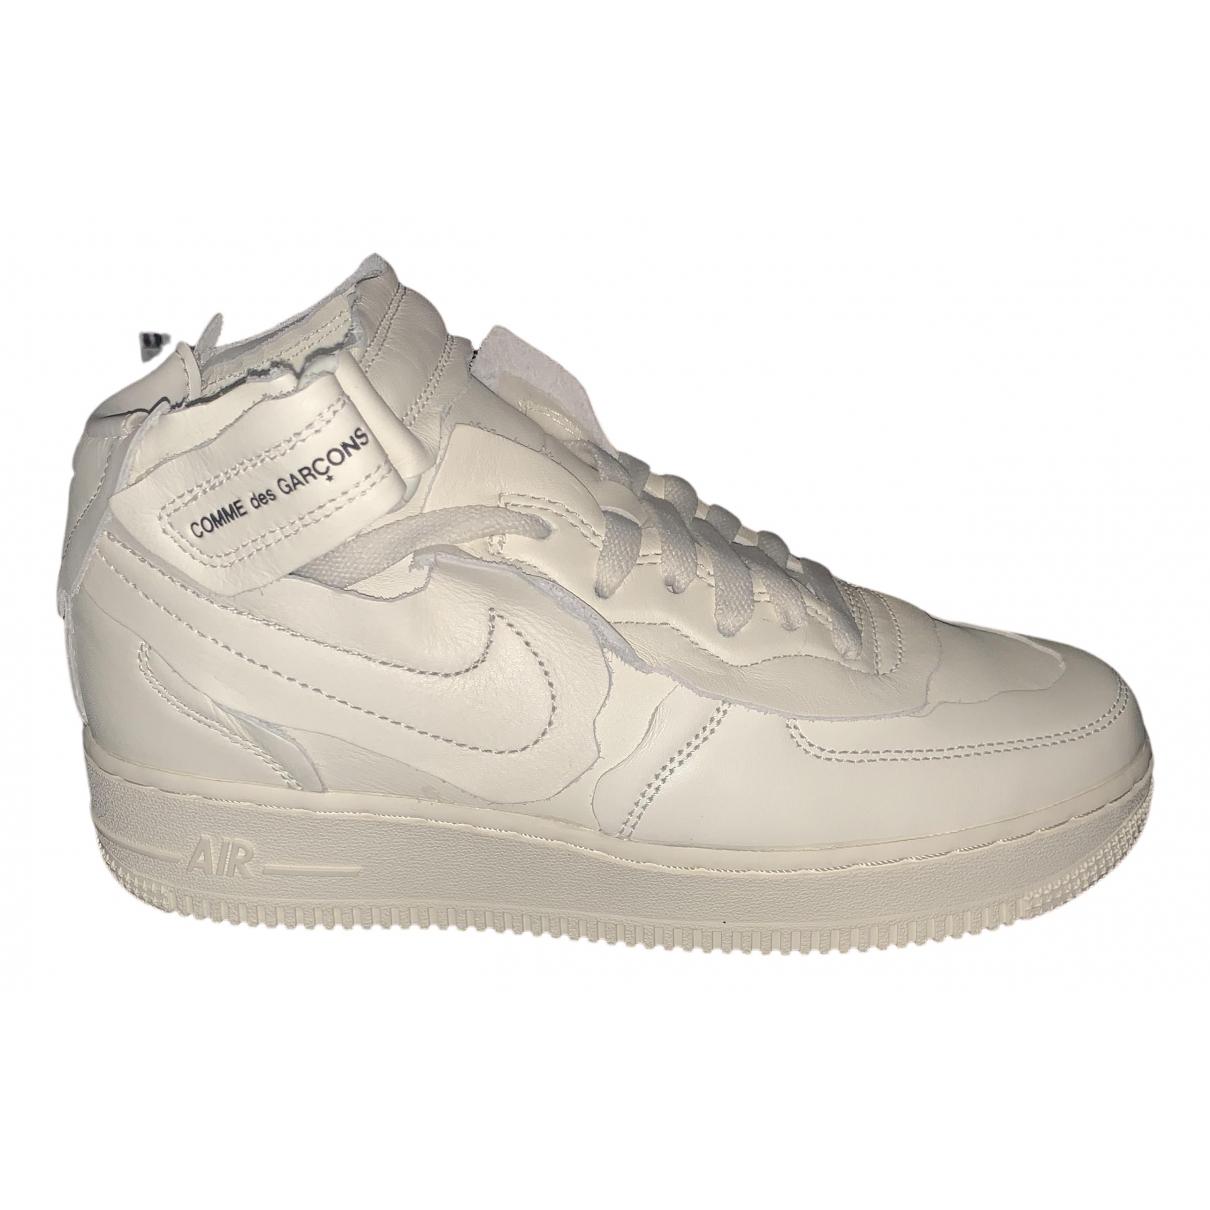 Nike X Comme Des Garcons Air Force 1 Sneakers in  Weiss Leder